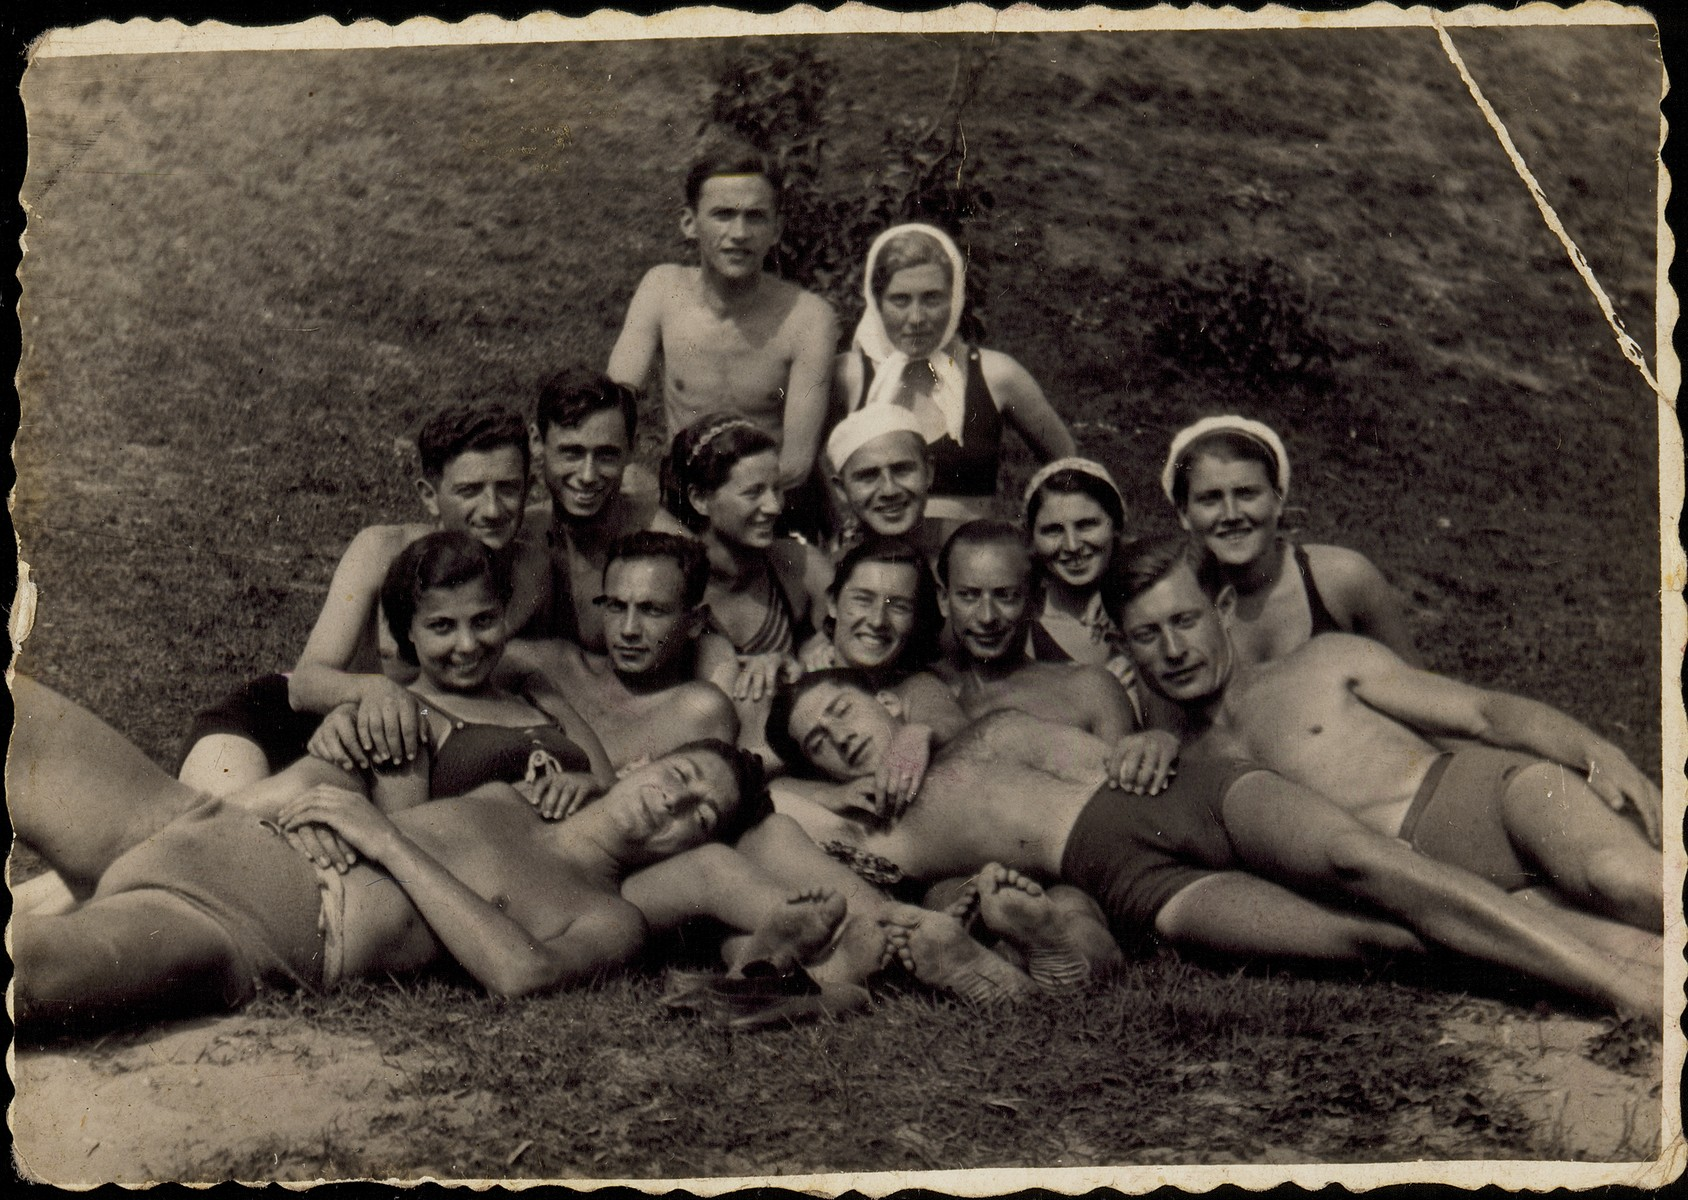 Group portrait of members of the Betar revisionist Zionist youth movement in Eisiskes and its vicinity, enjoying themselves at a beach.  Among those pictured is Shepski Sonenson (second row from the top, at the right).  He was killed by the Germans during the September 1941 mass shooting action in Eisiskes.